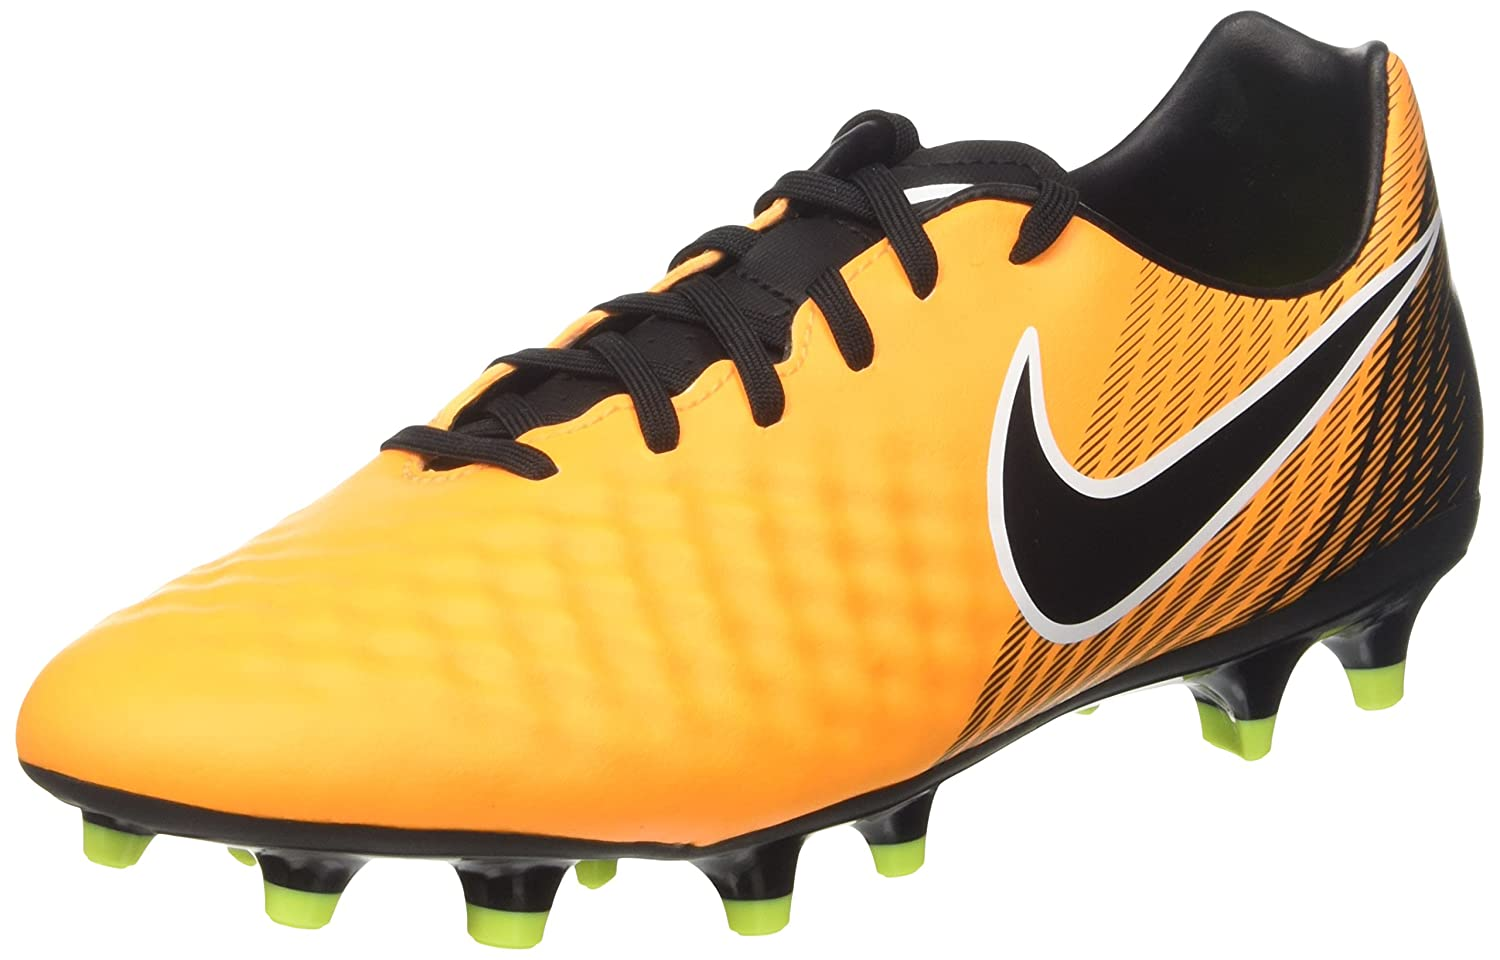 NIKE Men's Magista Onda II FG Soccer Cleat B0059D3YU6 12 D(M) US|Laser Orange/Black/White/Volt